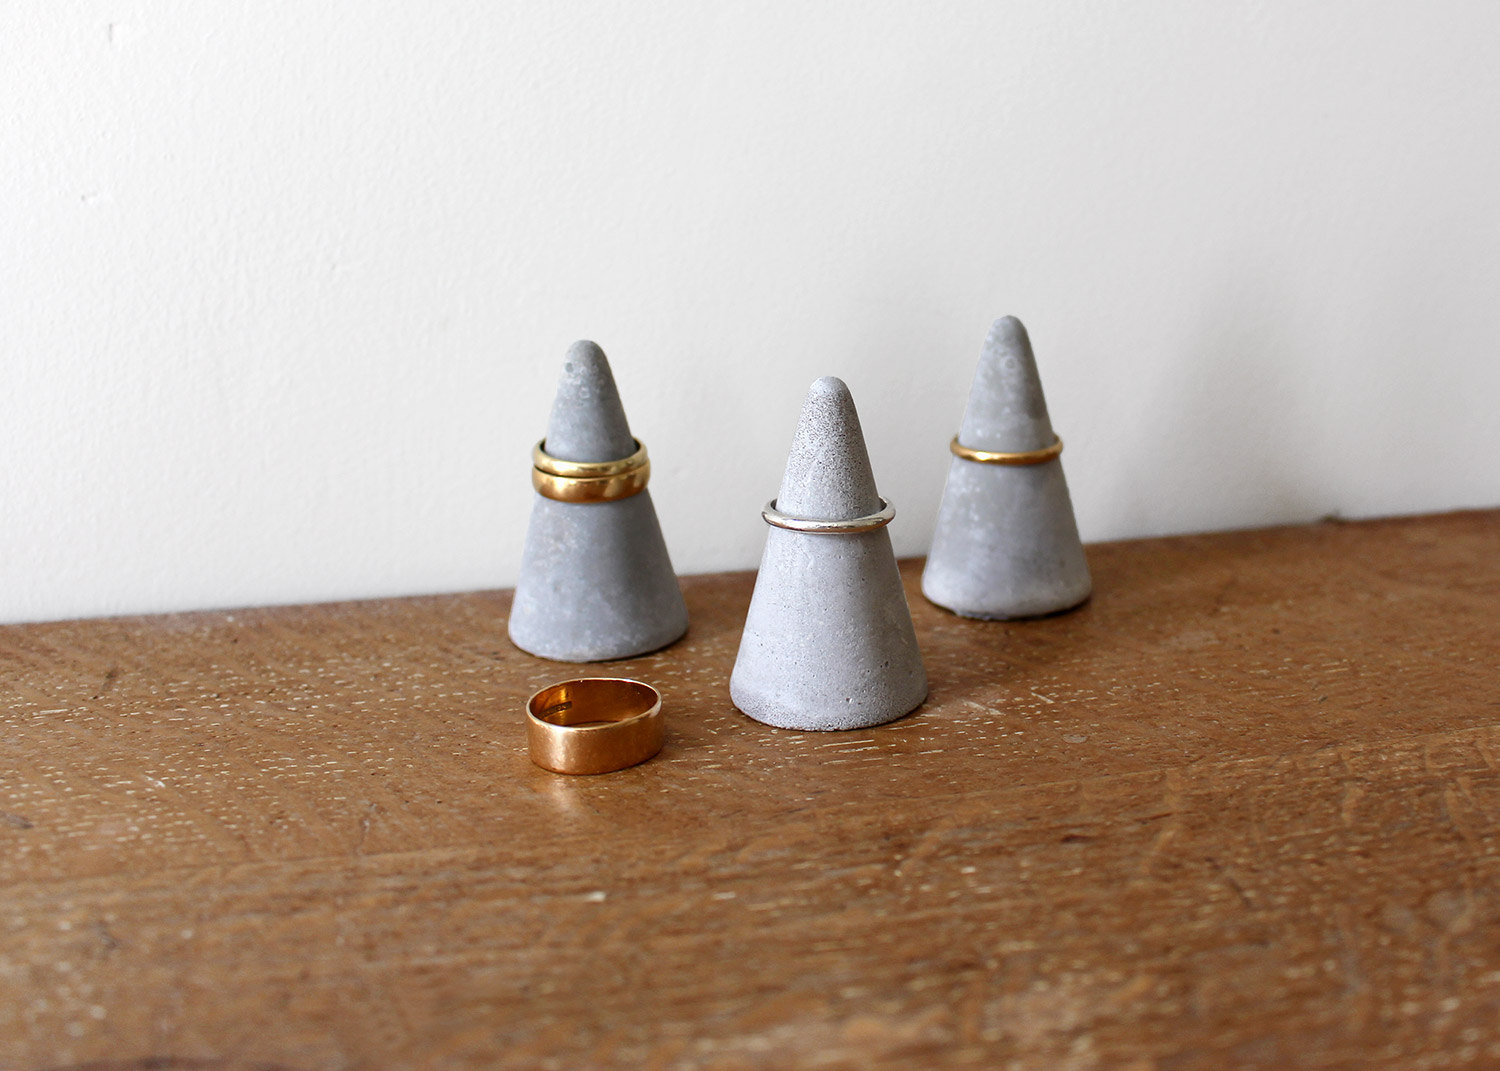 Three stones in a conic shape is a creative way to design a jewelry holder, especially for rings.